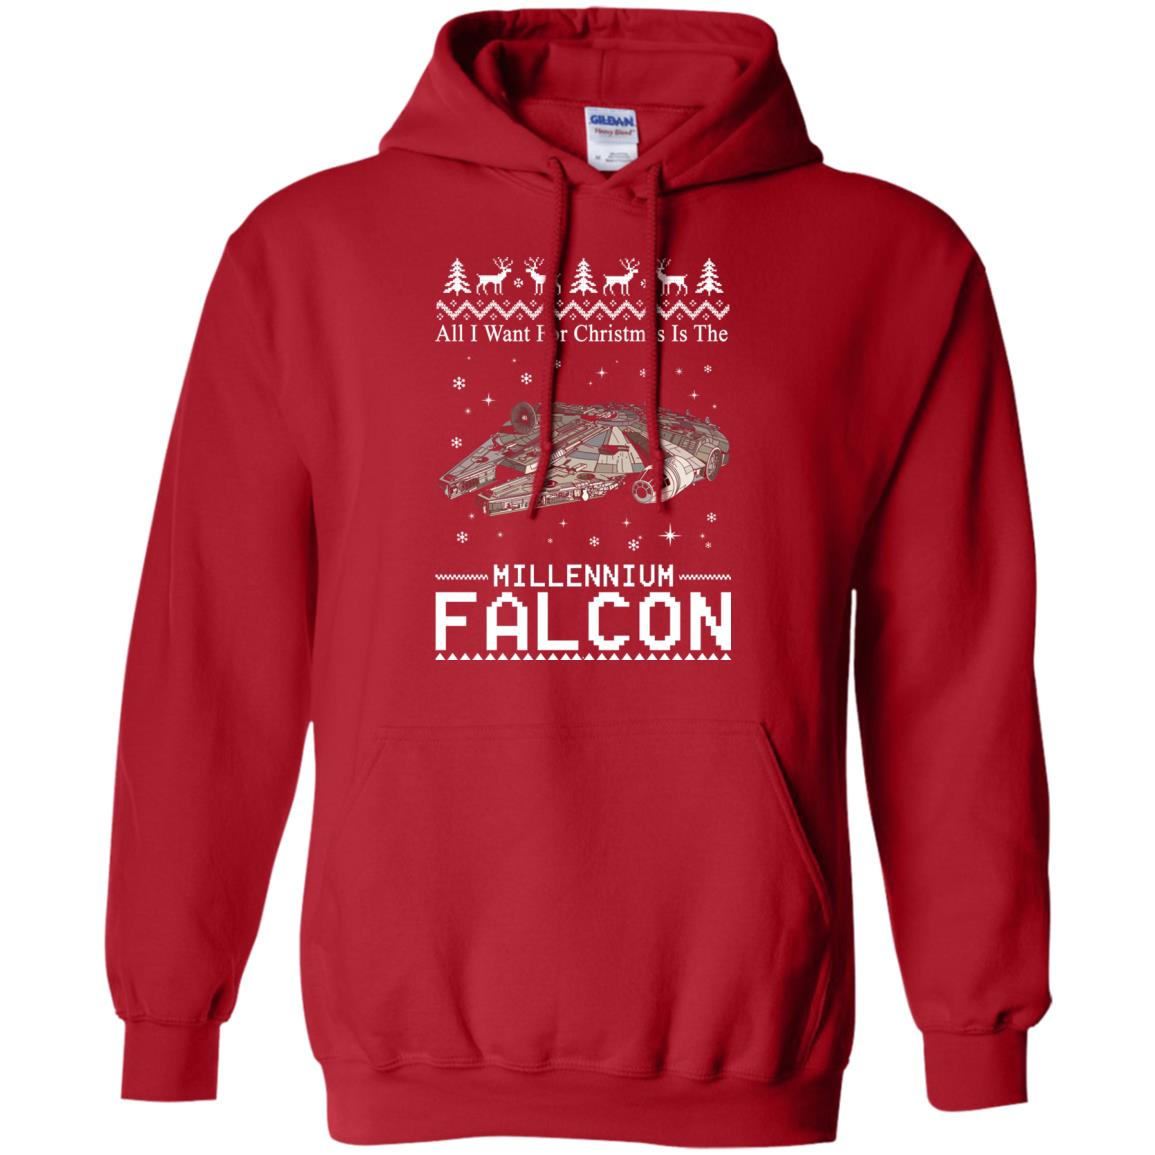 image 2137 - All I Want For Christmas is The Millennium Falcon Sweater, Ugly Sweatshirt